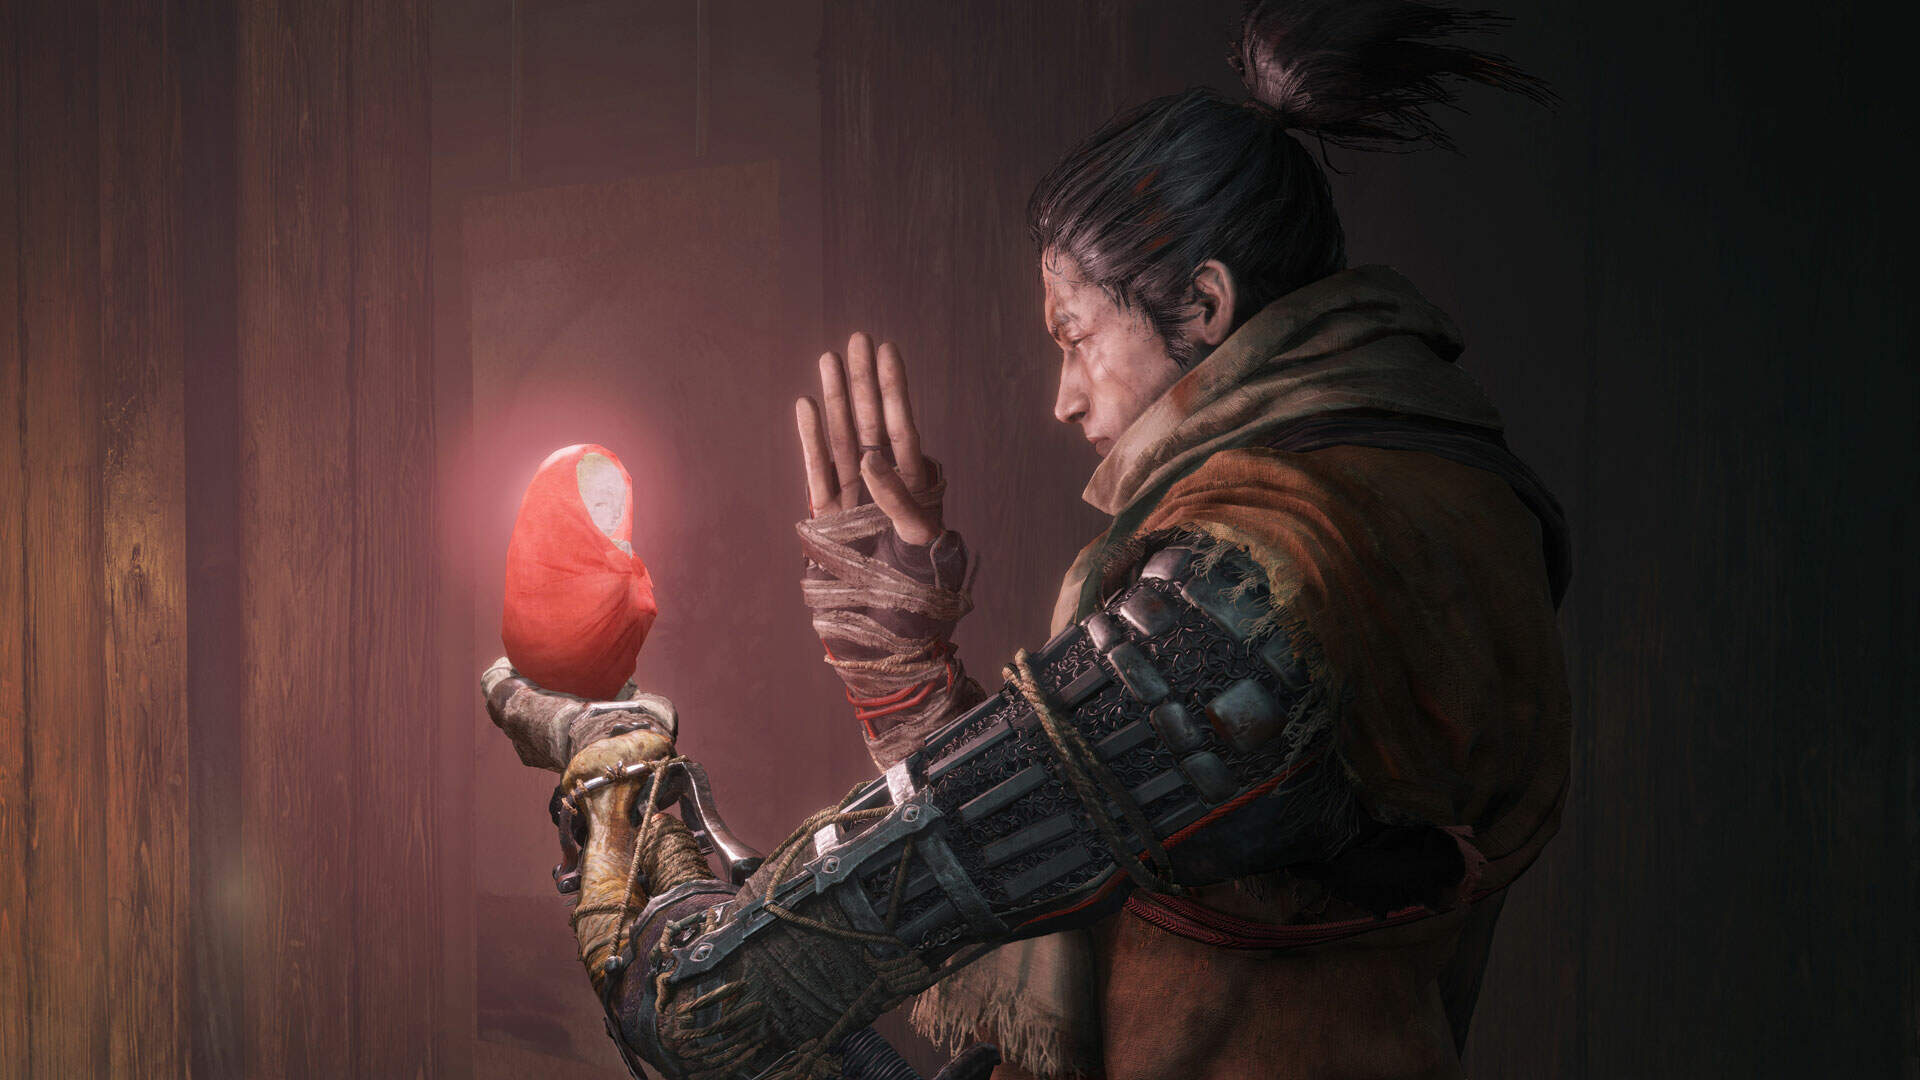 Sekiro: Shadows Die Twice Wins Game of the Year: The Full List of Winners From Tonight's The Game Awards